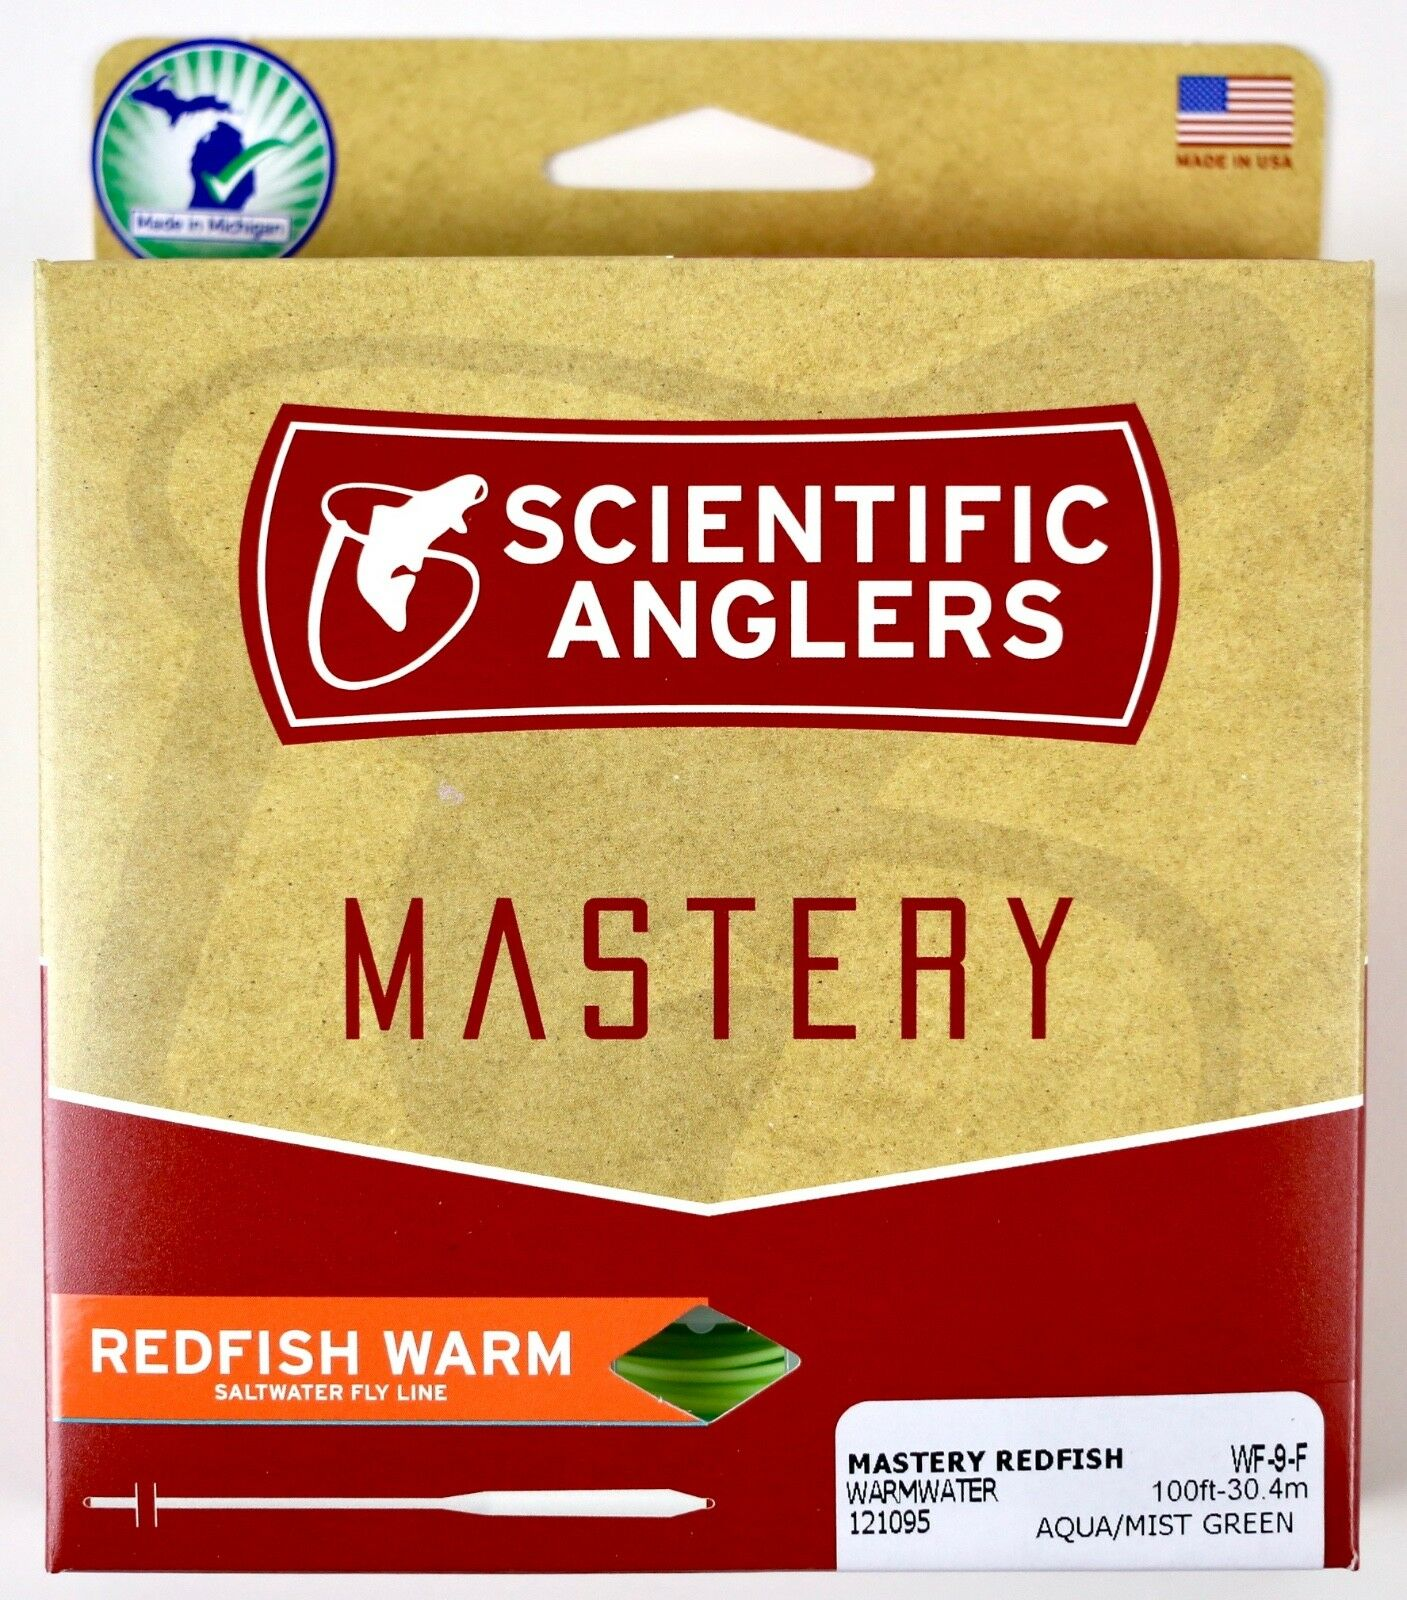 Scientific Anglers  Mastery Redfish Warm Fly Line WF9F  Free Fast Ship 121095  free shipping on all orders